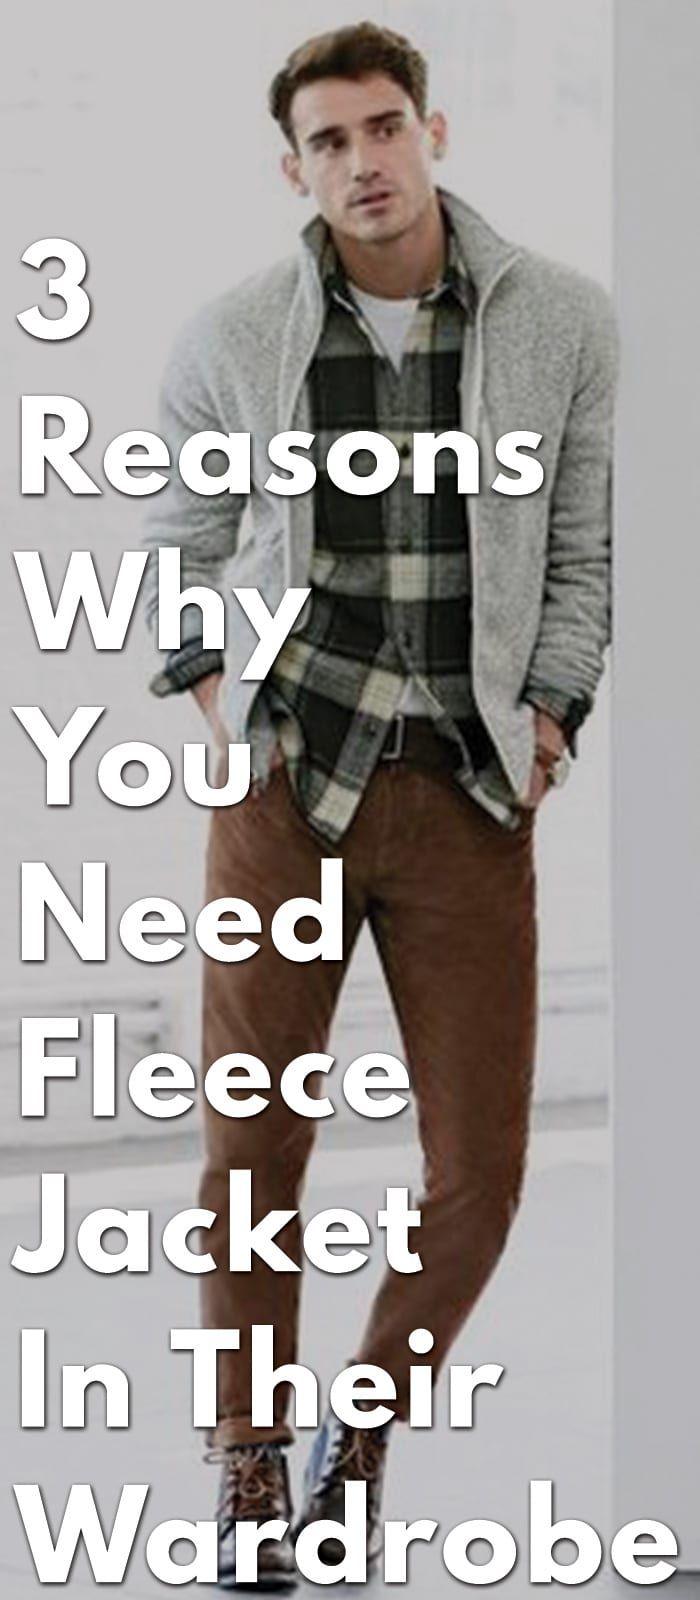 3-Reasons-Why-You-Need-Fleece-Jacket-In-Their-Wardrobe